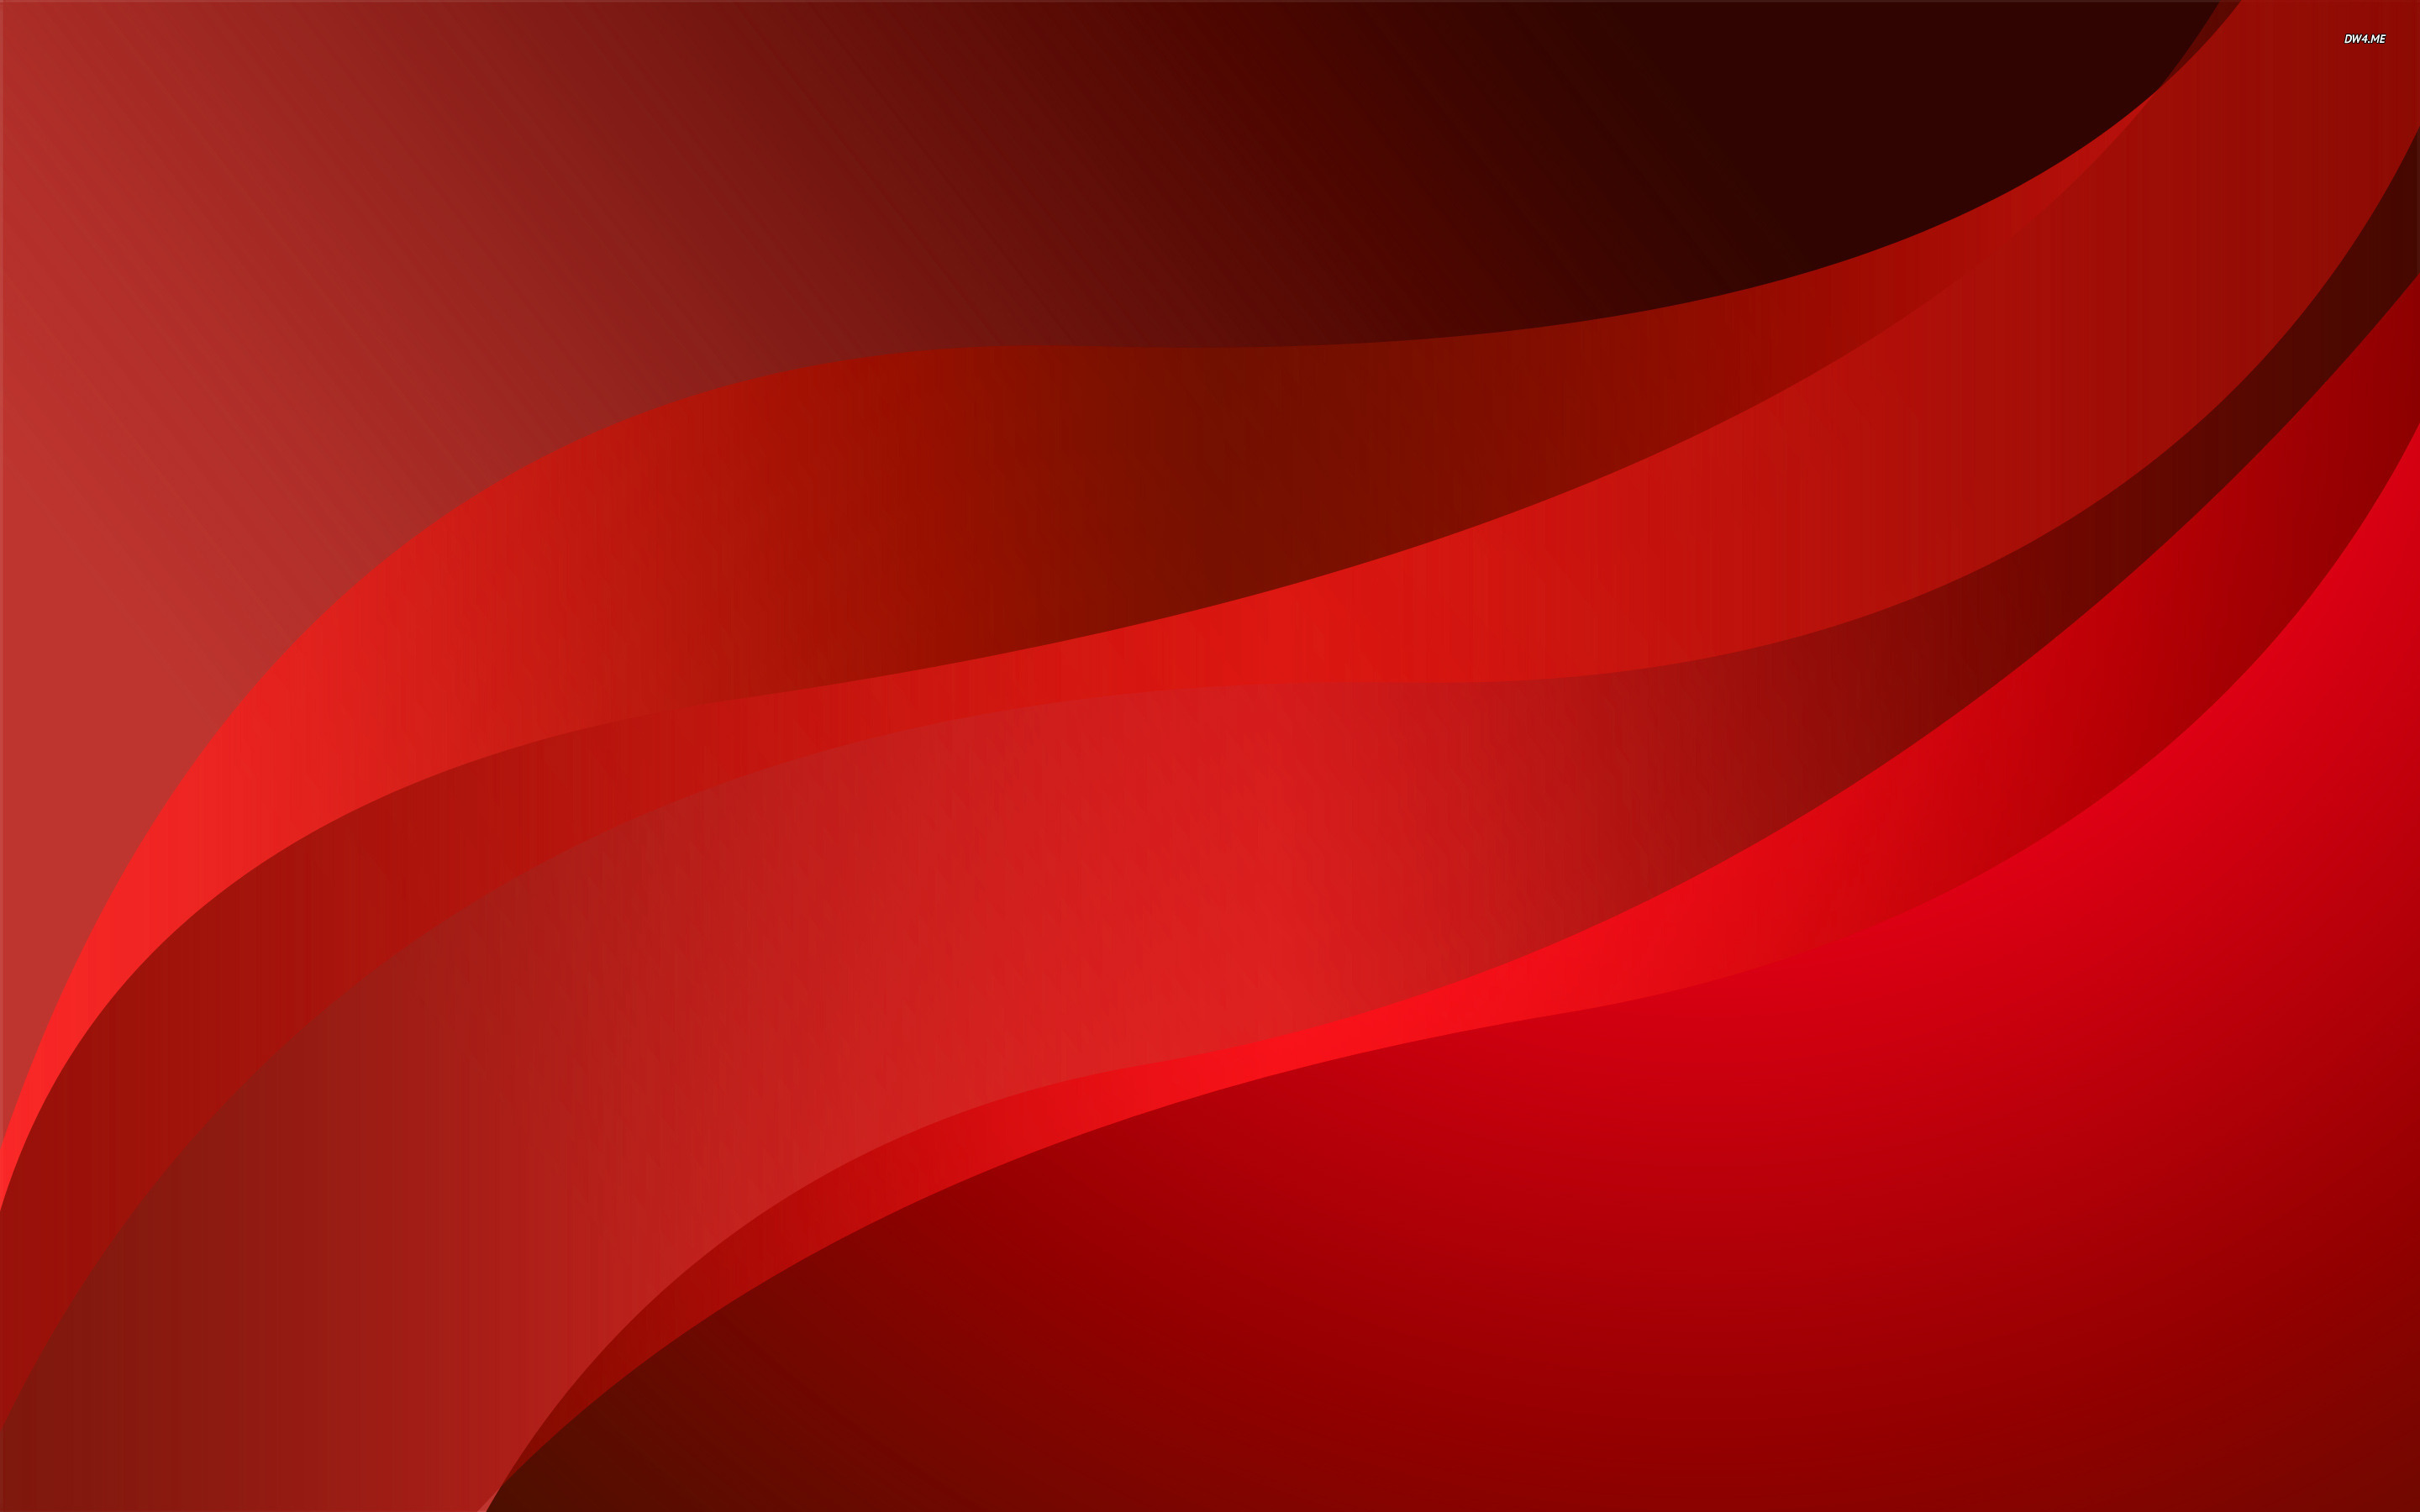 red curves abstract wallpaper HD Wallpaper Backgrounds Tumblr 2880x1800